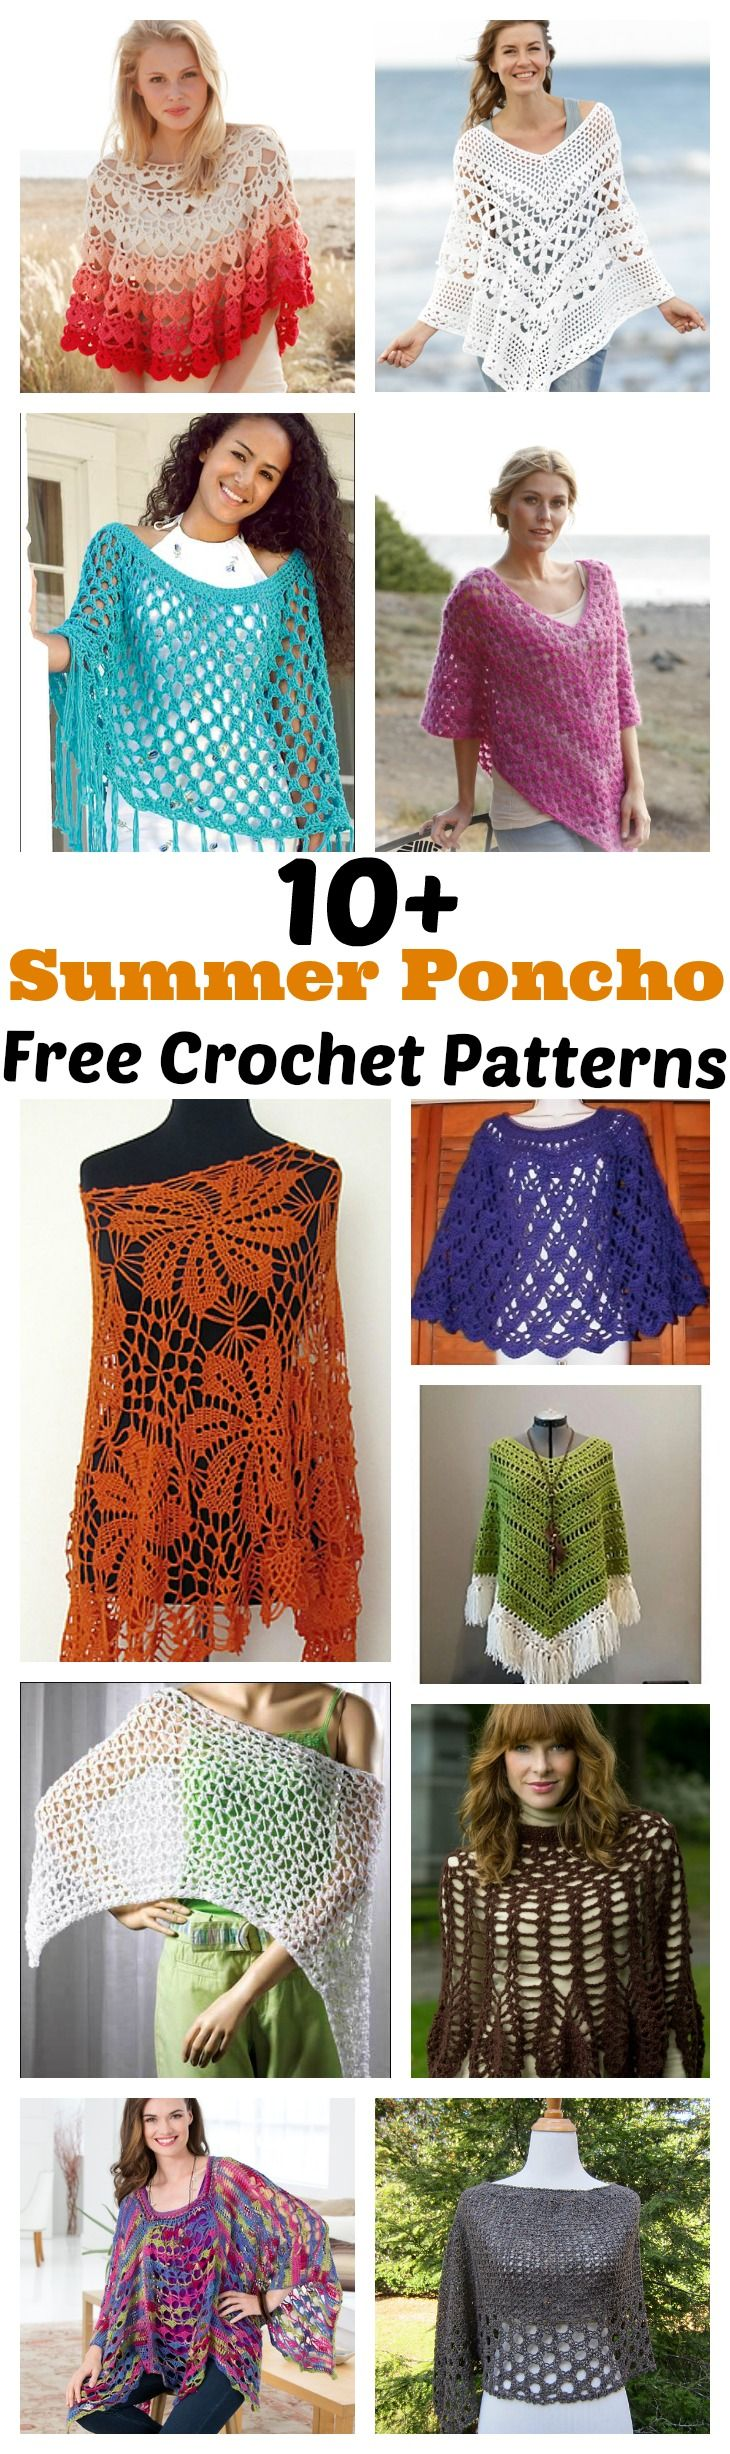 10 + Summer Poncho Free Crochet Patterns - Page 2 of 2 -